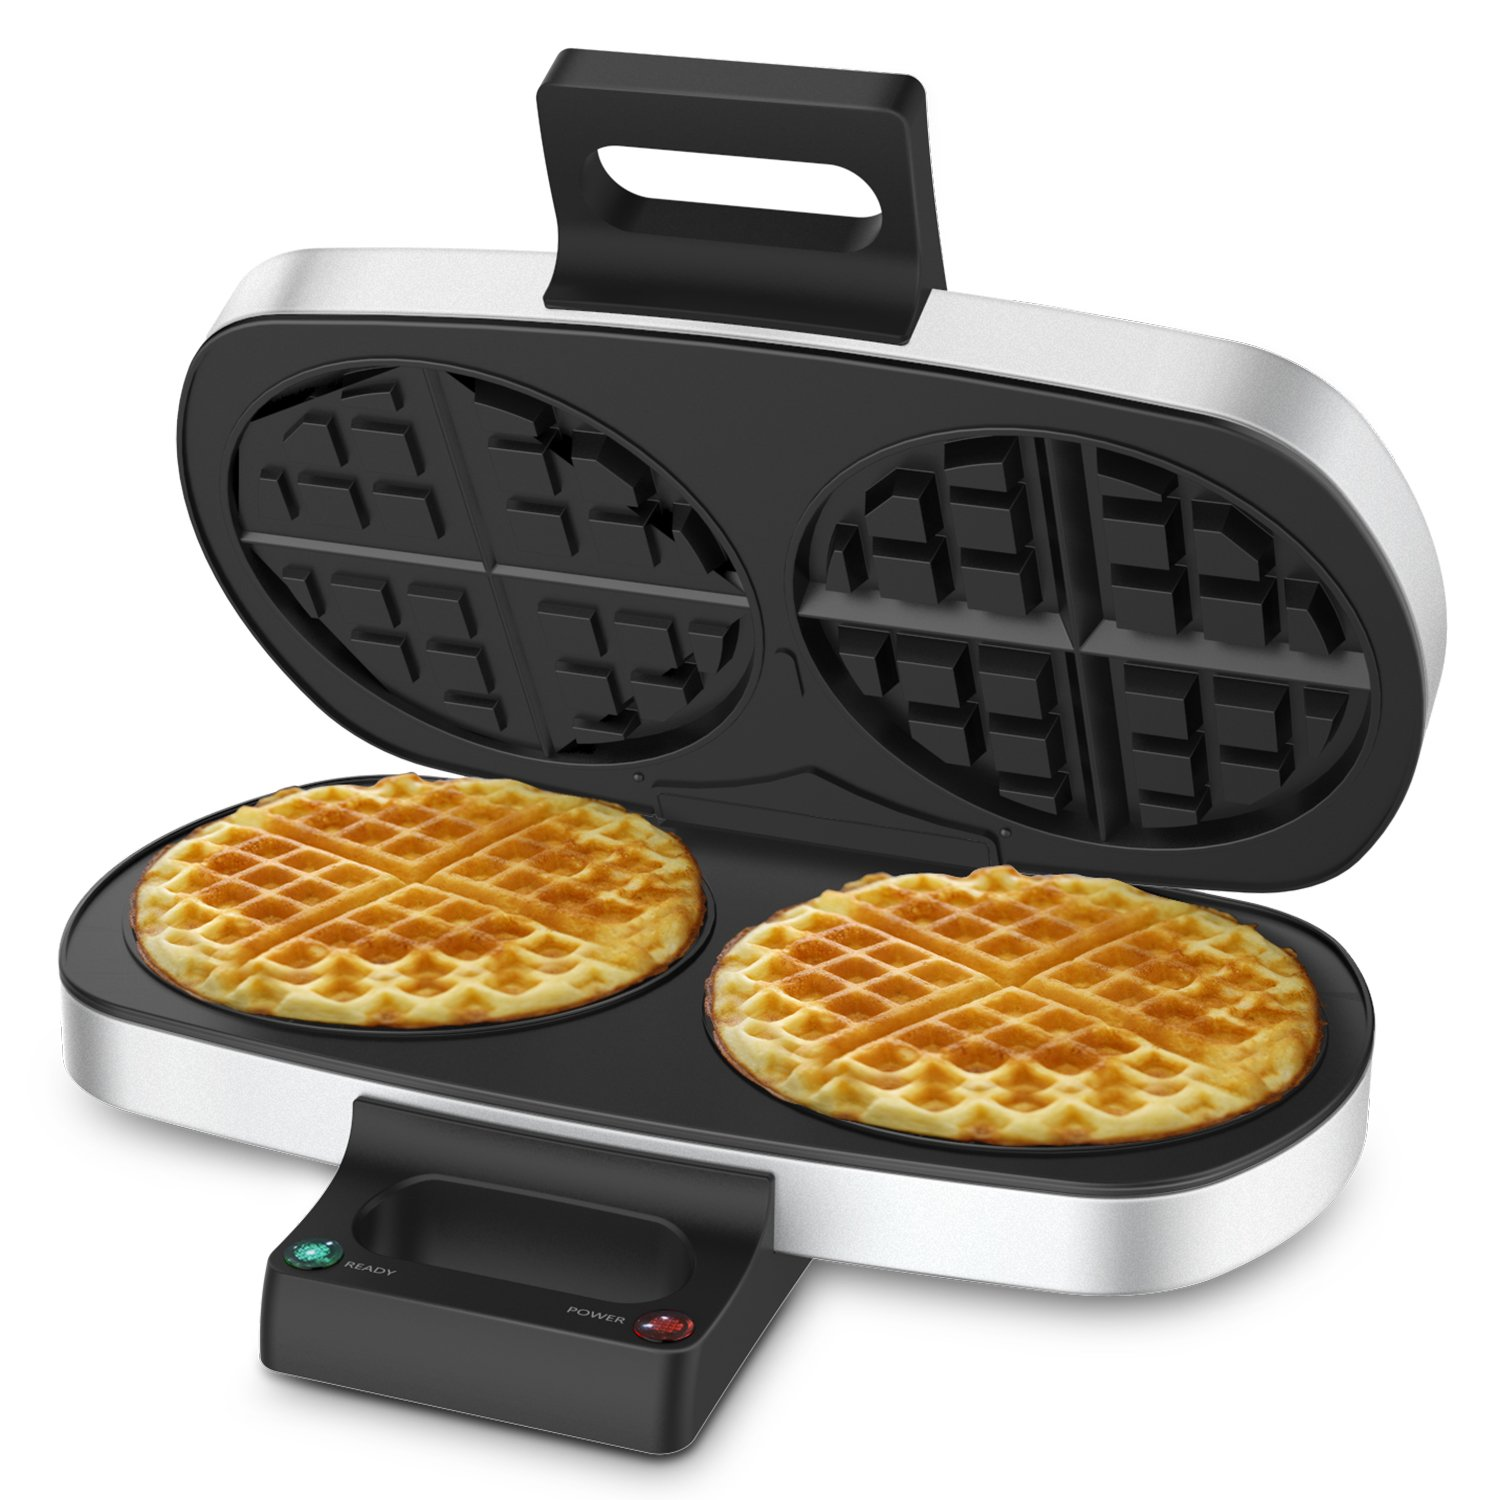 2 Plates Waffle Maker - Elechomes 2-Piece Classic Belgian Waffle Maker with Non-Stick Heating Plates and Mirrior Surface (FDA Certified)